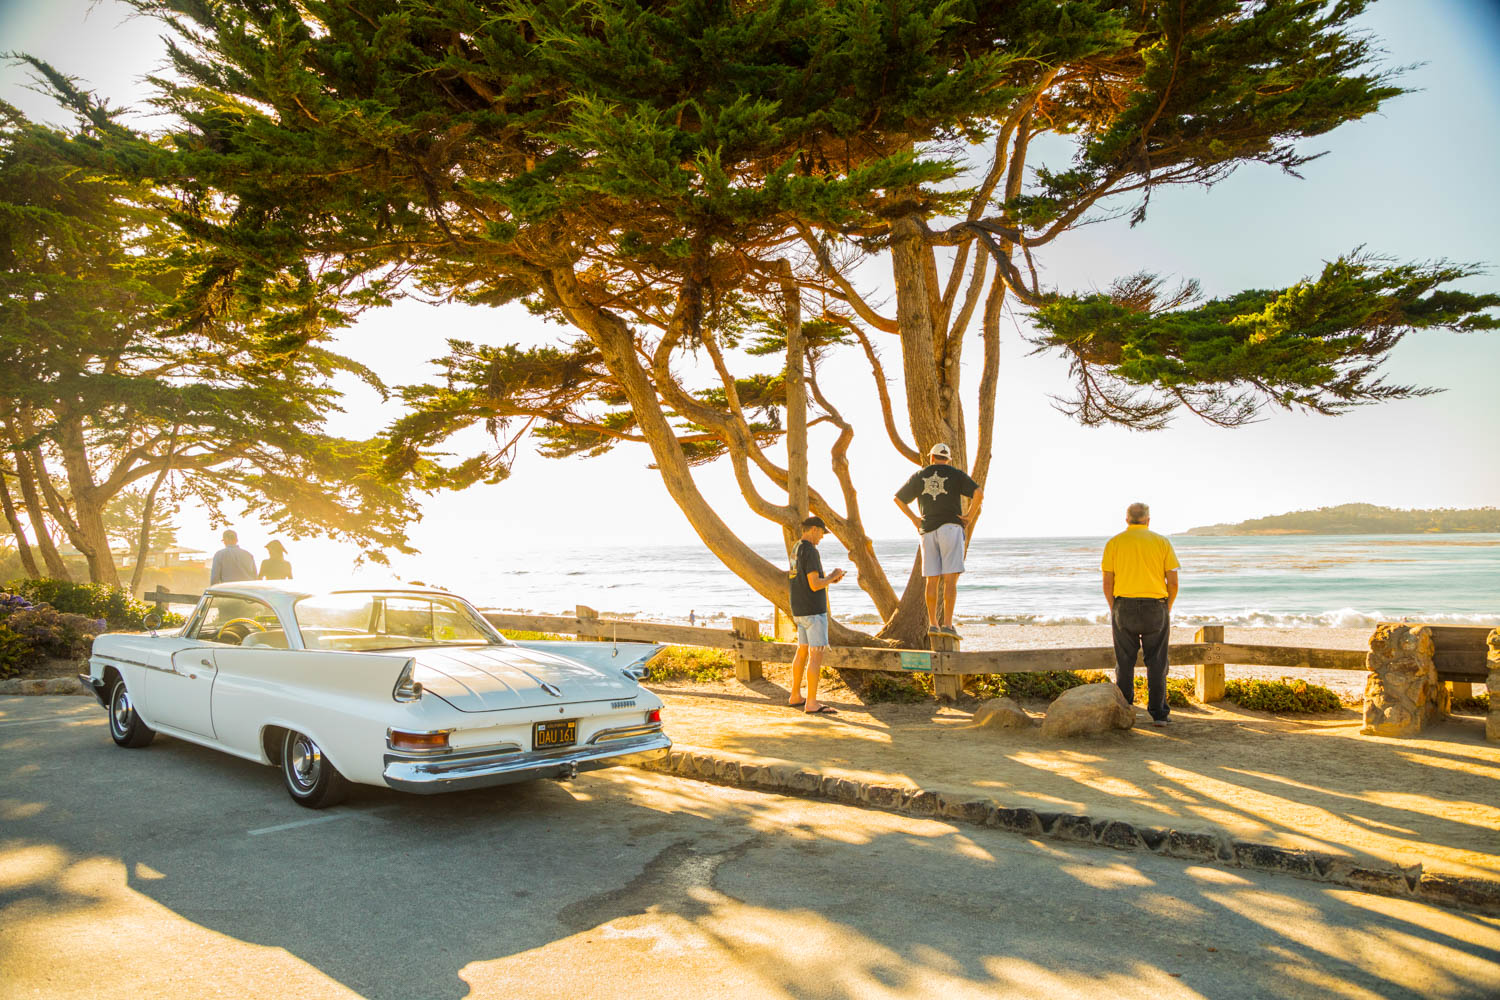 Time passes and people change, but our vagabonds proved that friendship endures and a '61 Chrysler makes an excellent vessel for travel and for carrying memories.